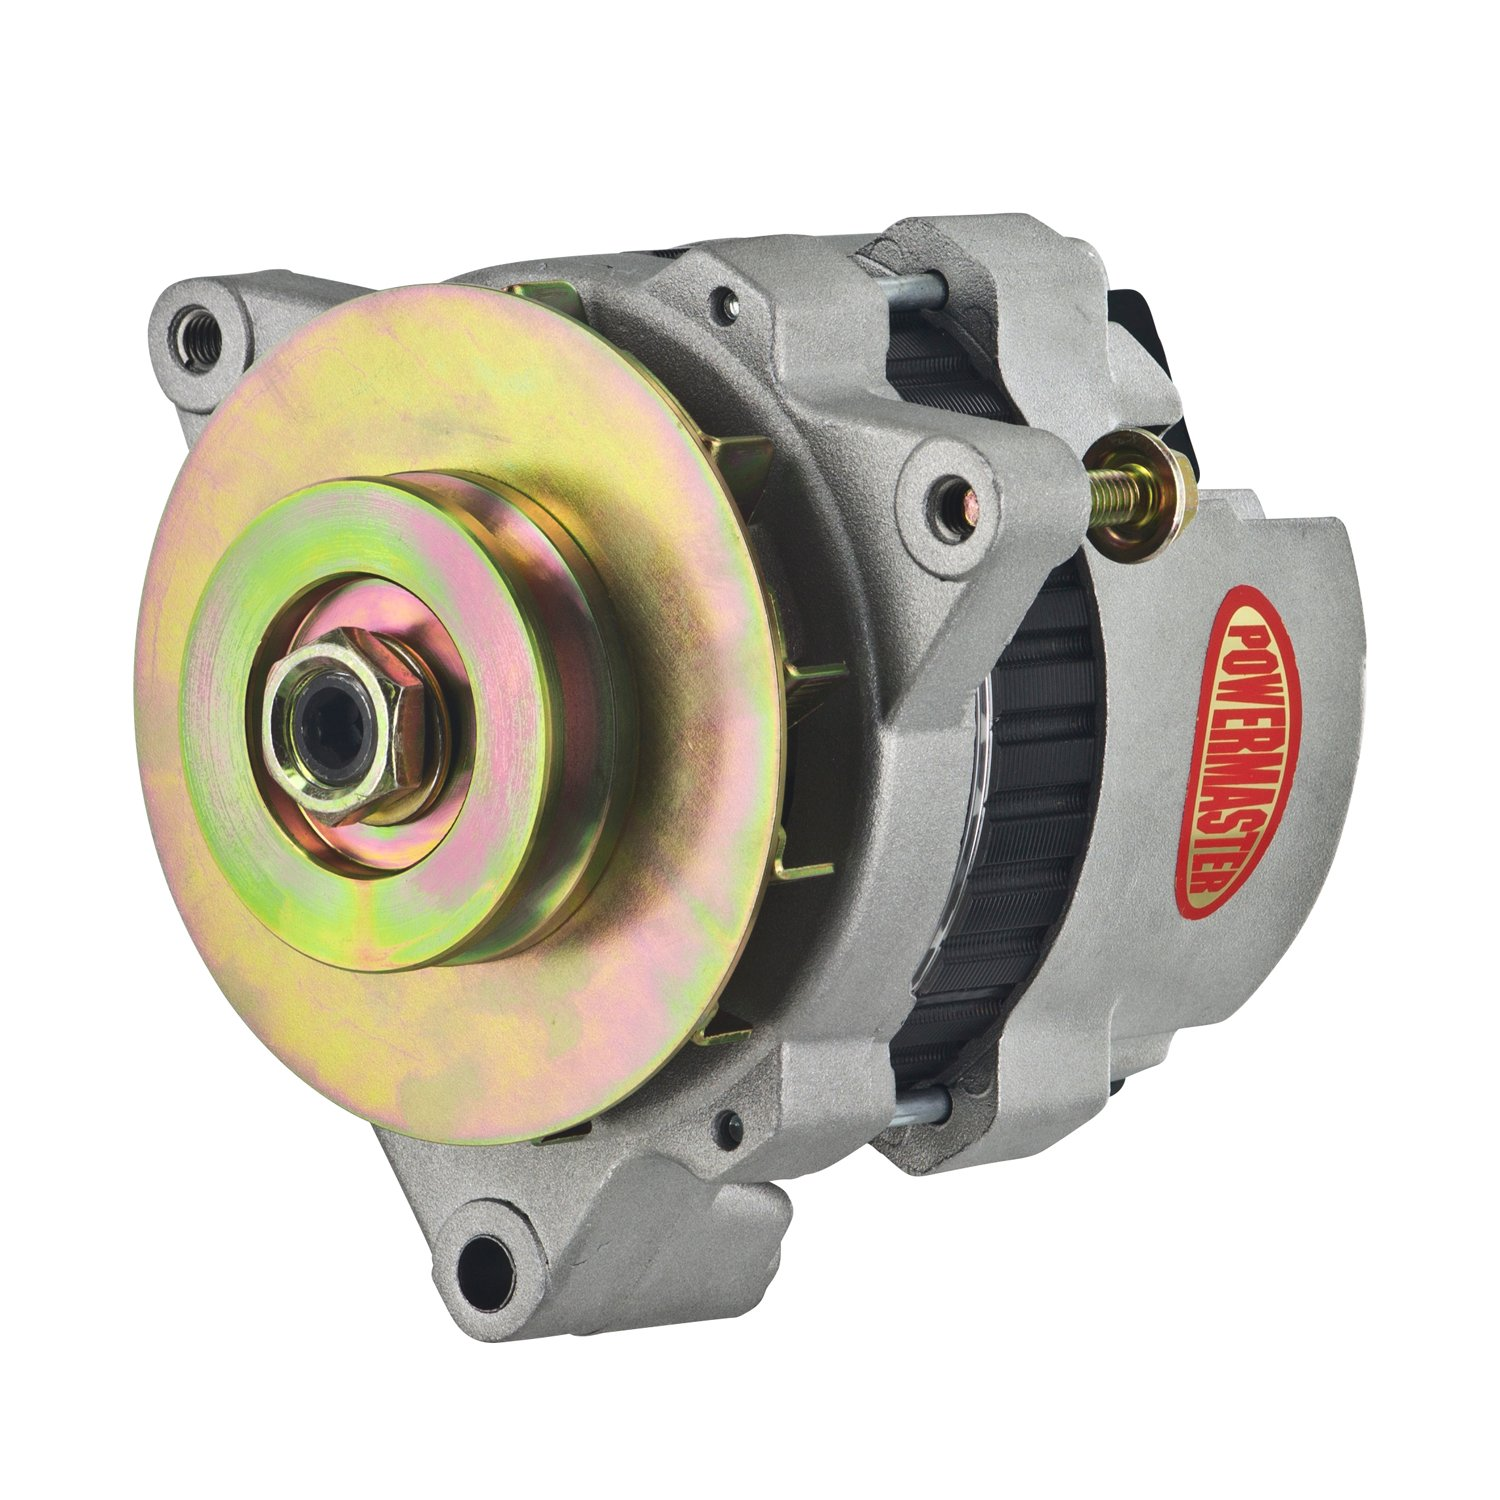 Powermaster 7478 - GM 5x5 Compact Race Alternators